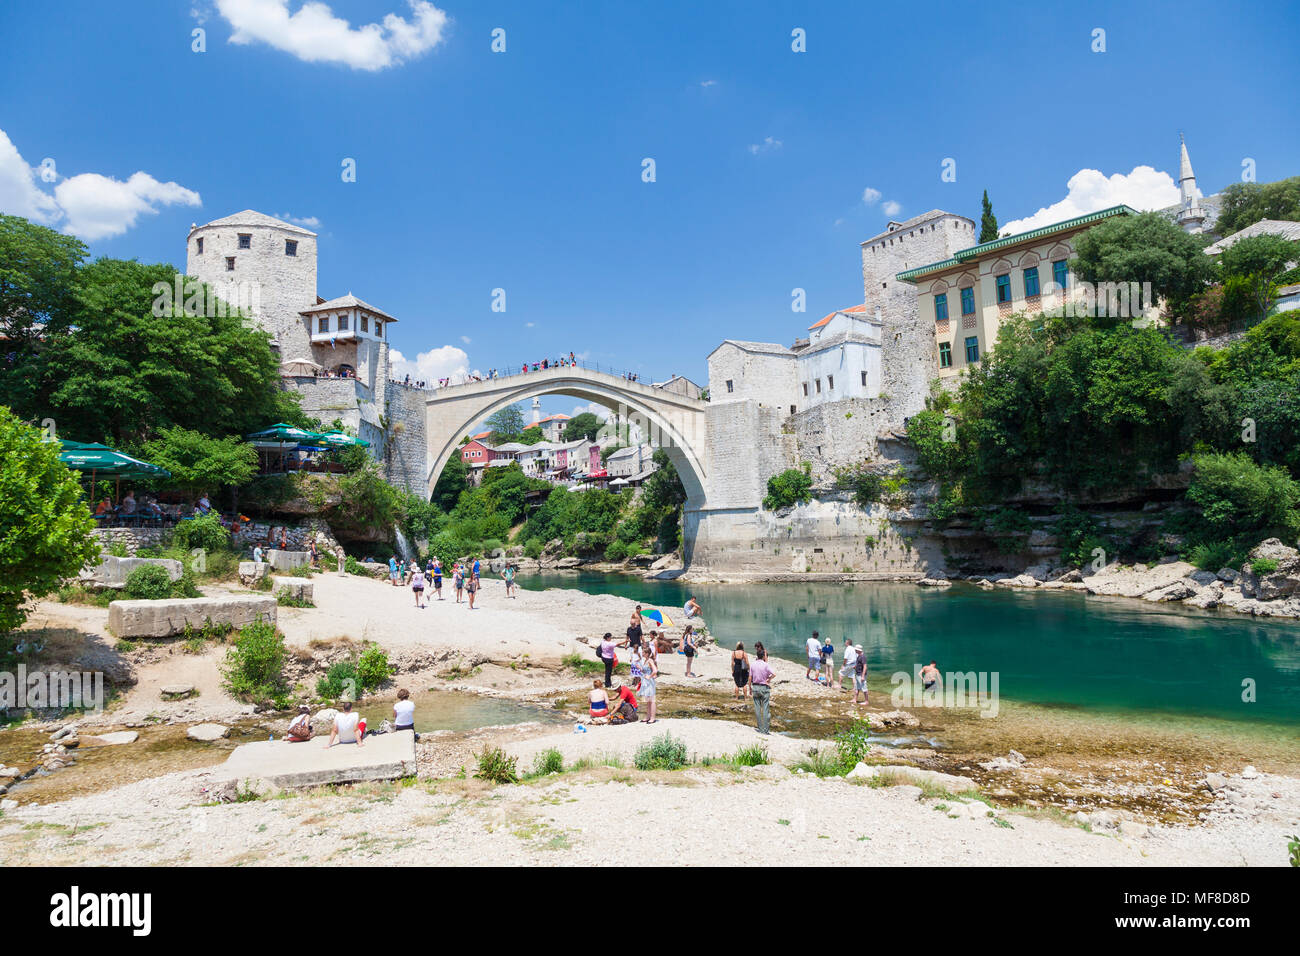 The Stari Most, Old Bridge from the banks of the Neretva River in Mostar, Bosnia and Herzegovina - Stock Image